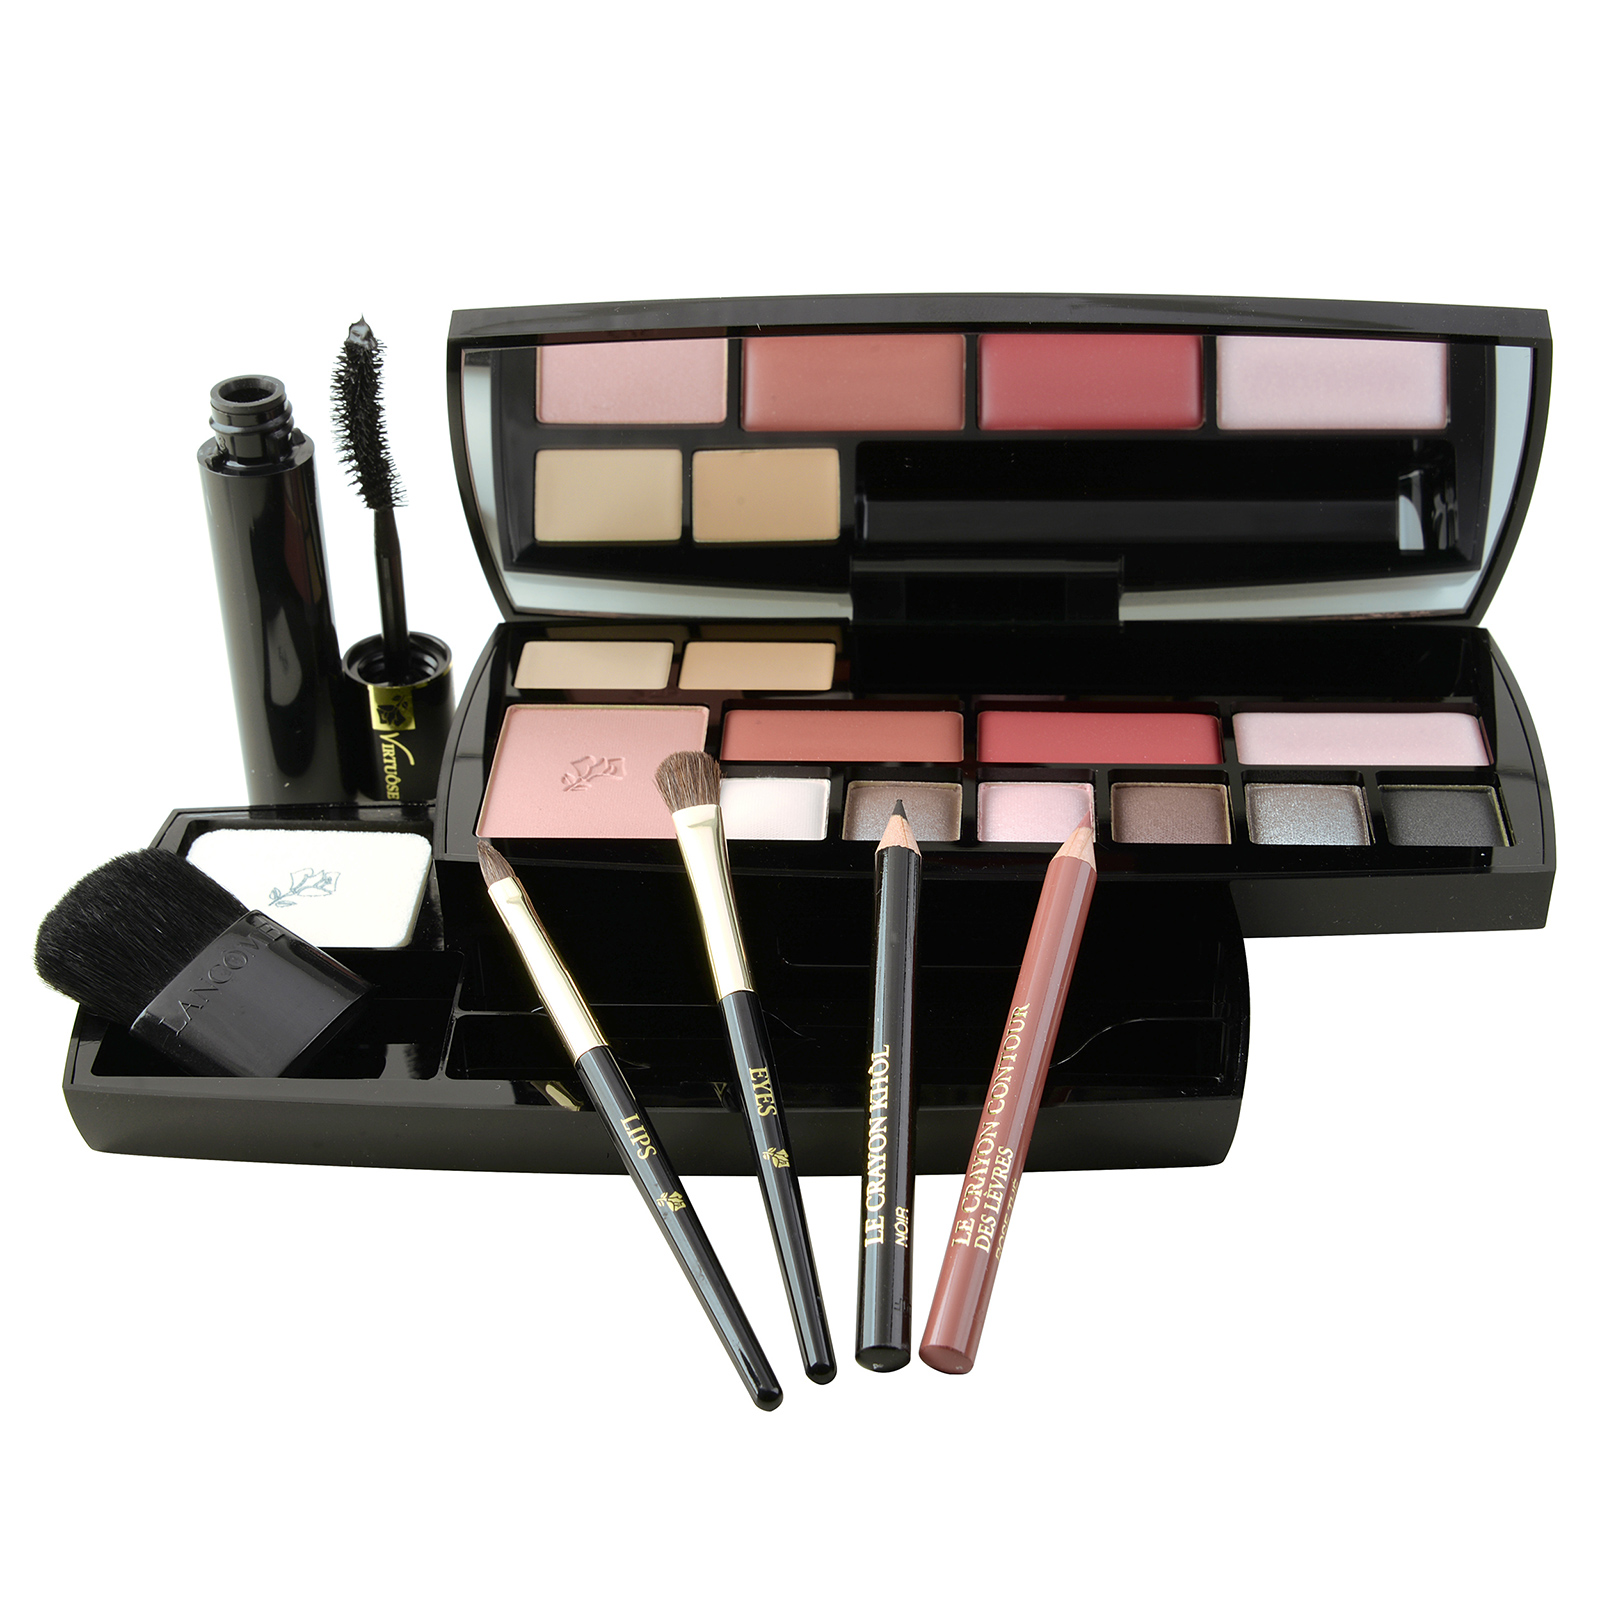 LANC�ME  Absolu Voyage Complete Expert Make-up Palette (Travel Exclusive) 1box,